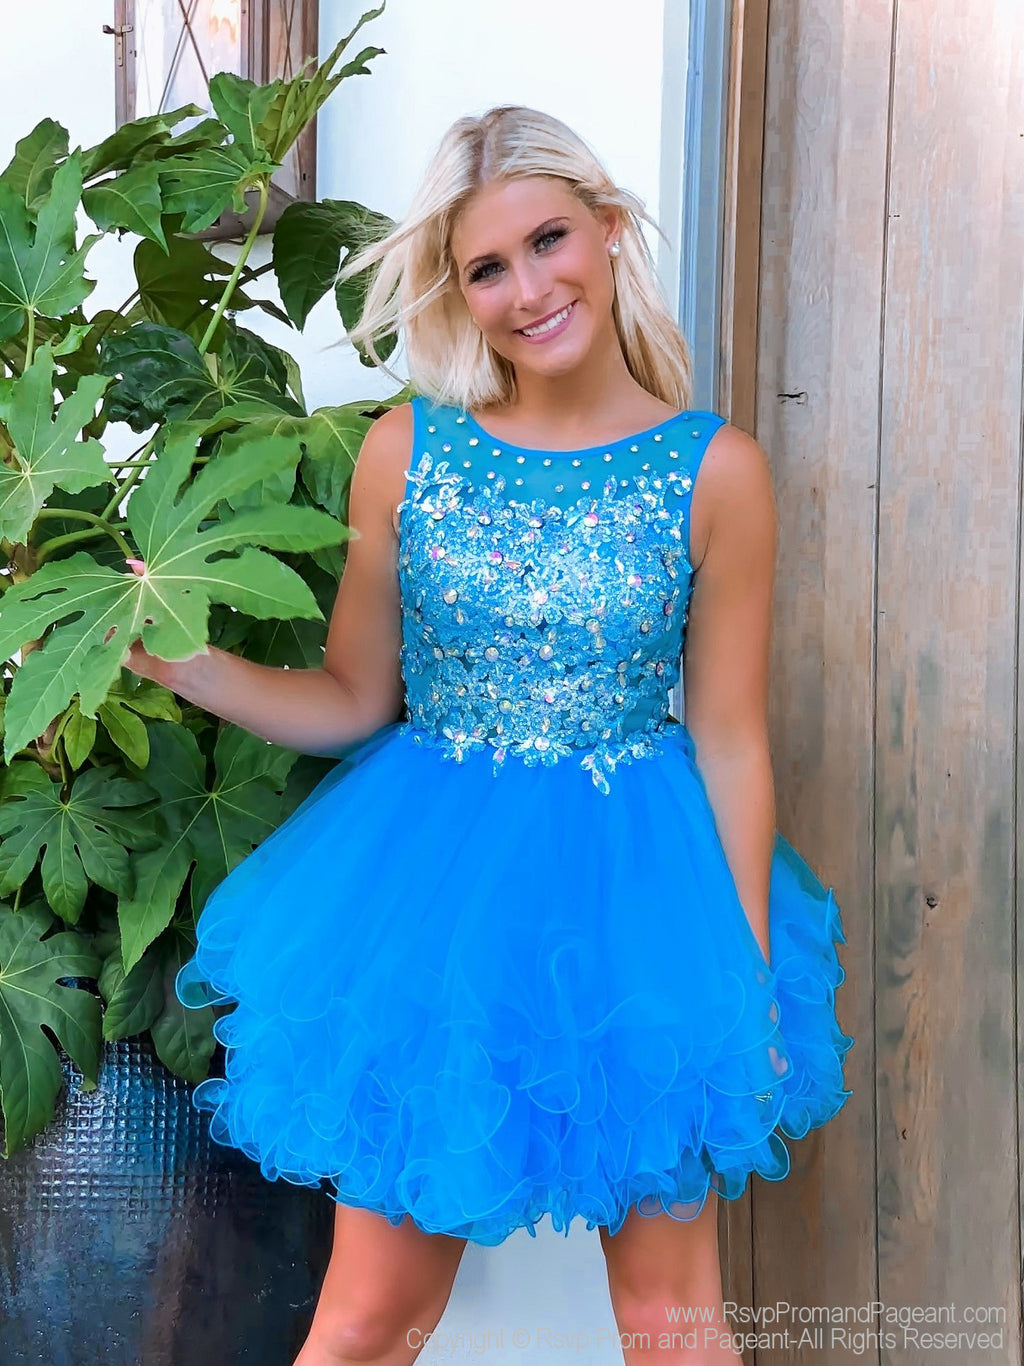 Model showing off front of Fabulous Turquoise Beaded Short Homecoming Dress at Rsvp Prom and Pageant, Atlanta, Georgia